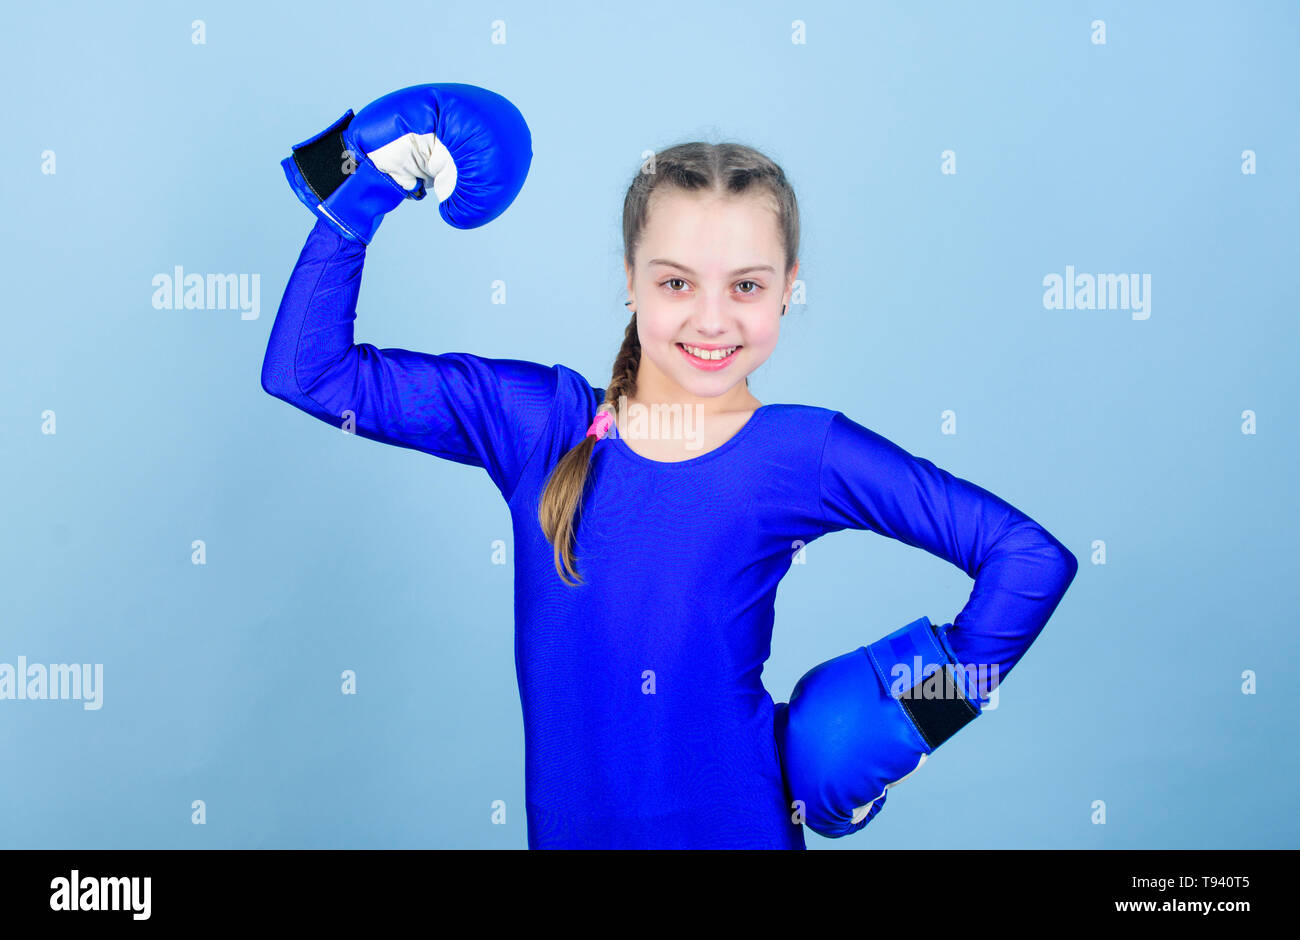 Training to be the best. punching knockout. Childhood activity. Fitness diet. energy health. workout of small girl boxer. Sport success. sportswear fashion. Happy child sportsman in boxing gloves. - Stock Image